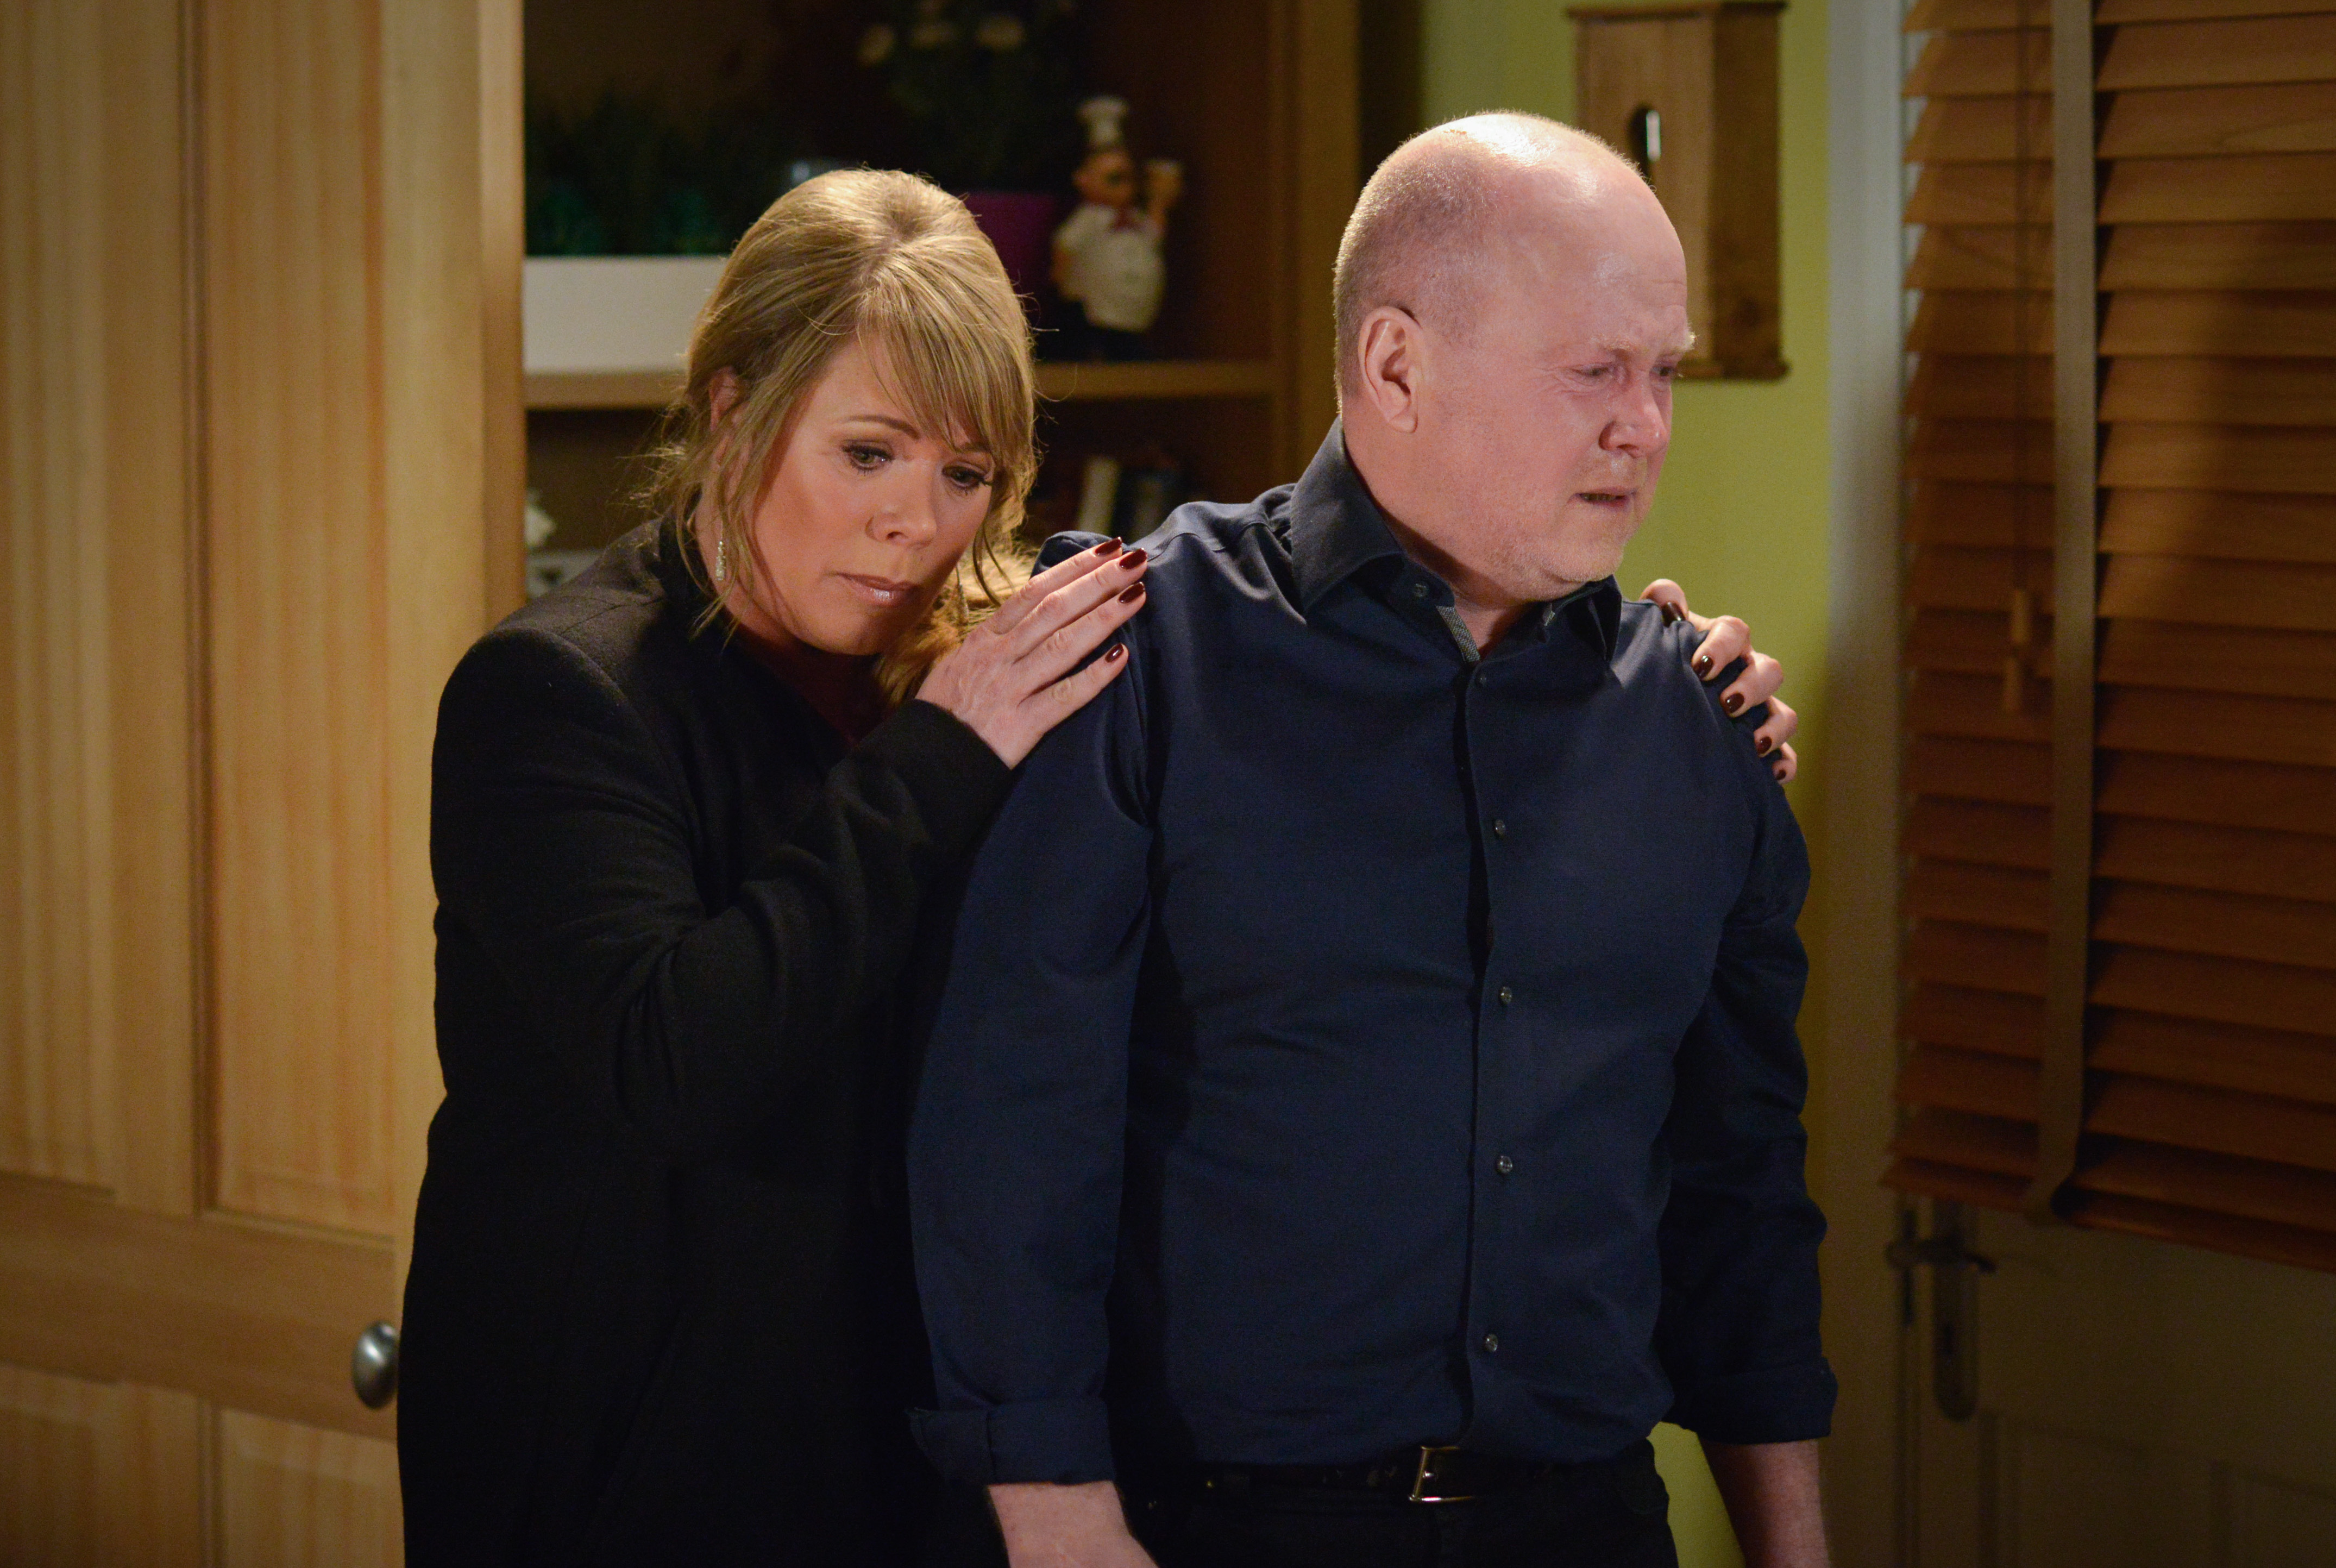 WARNING: Embargoed for publication until 00:00:01 on 10/05/2016 - Programme Name: EastEnders - TX: 19/05/2016 - Episode: EastEnders April - June 2016 - 5287 (No. n/a) - Picture Shows: +HOLD BACK FOR COMS+ Phil is devasted by Peggy's death as Sharon tries to comfort him. Sharon Mitchell (LETITIA DEAN), Phil Mitchell (STEVE MCFADDEN) - (C) BBC - Photographer: Kieron McCarron